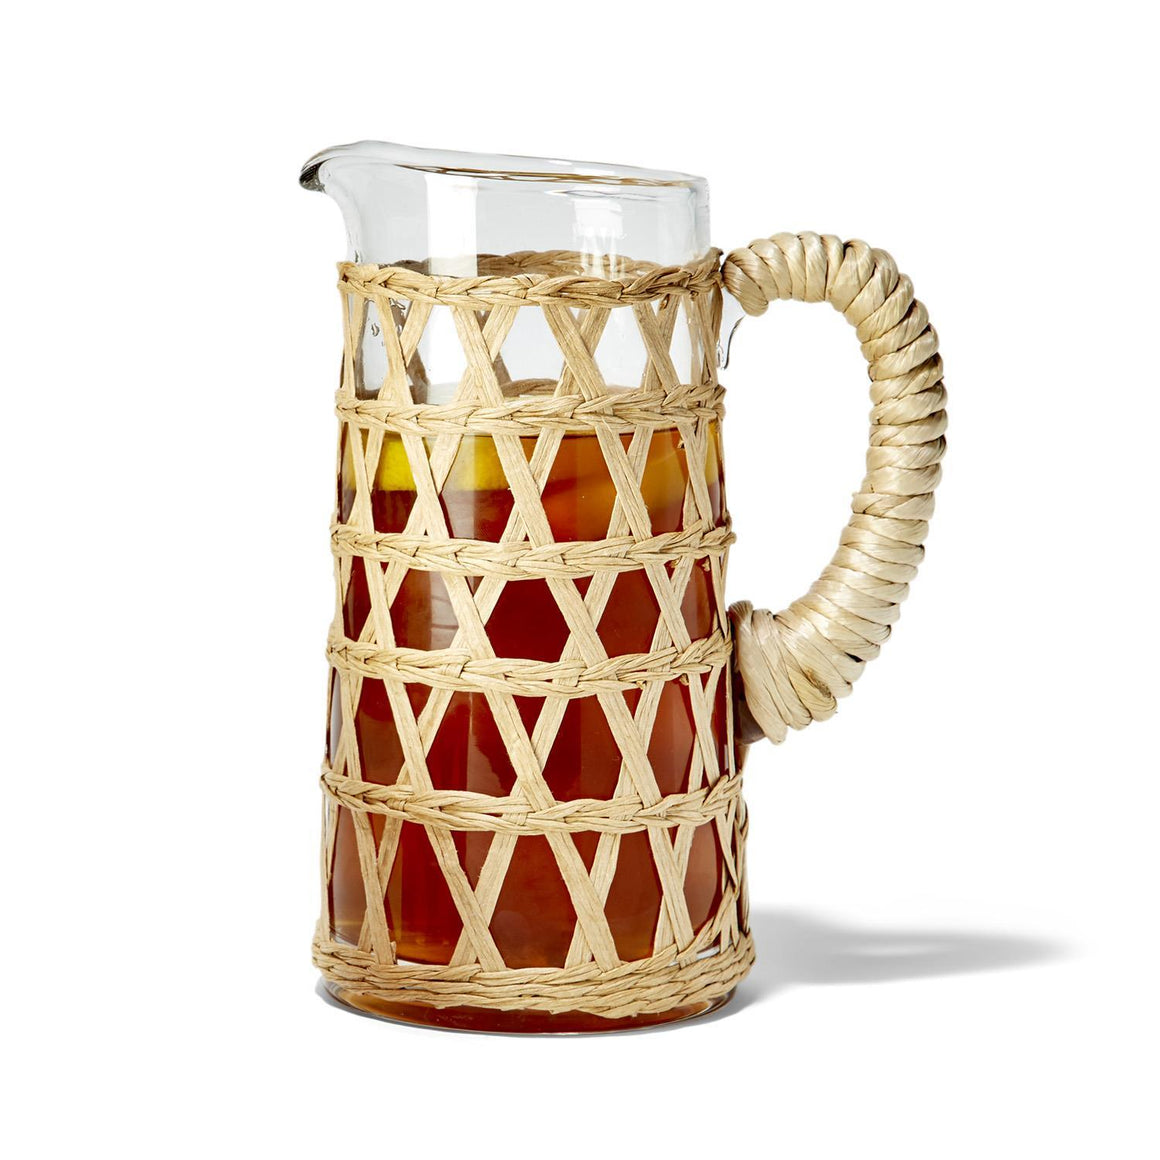 Island Chic Hand-Woven Lattice Pitcher - The Preppy Bunny